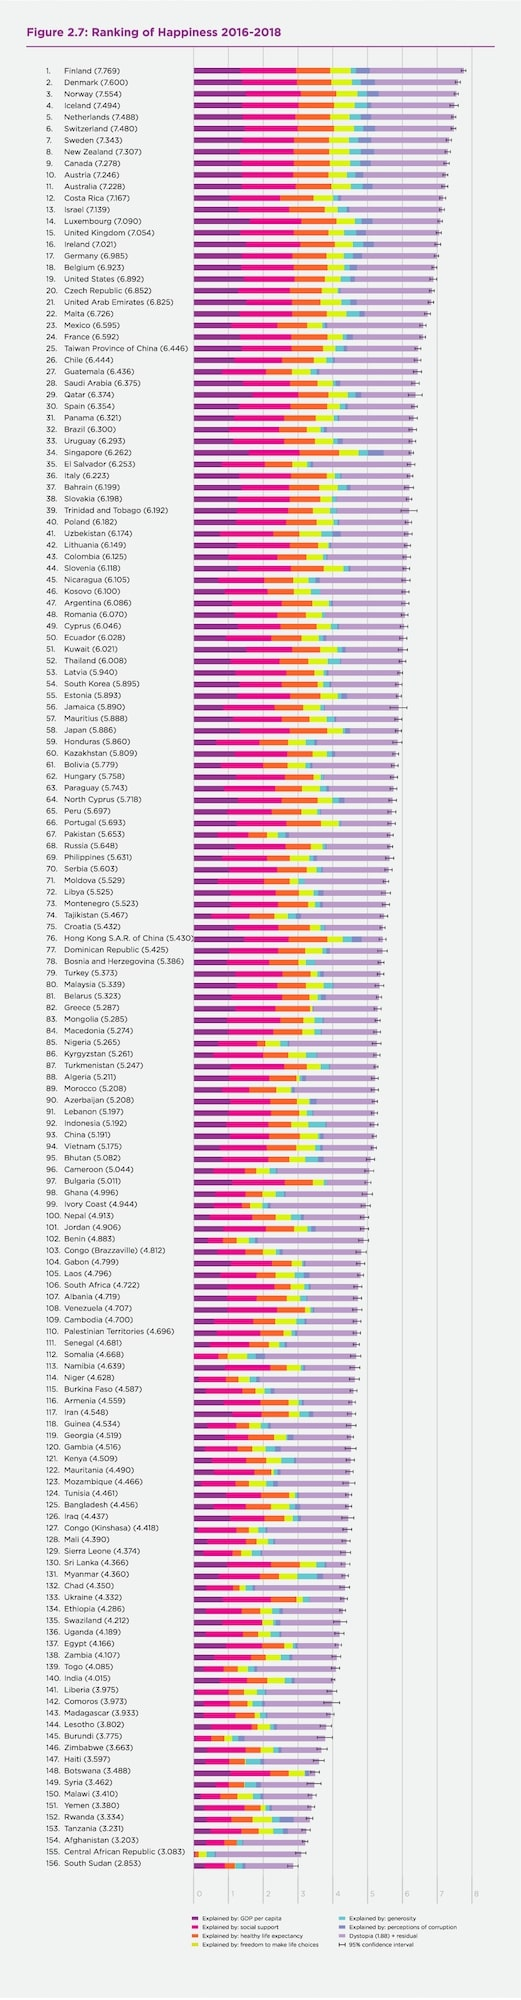 The World's Happiest Countries, Ranked - Digg